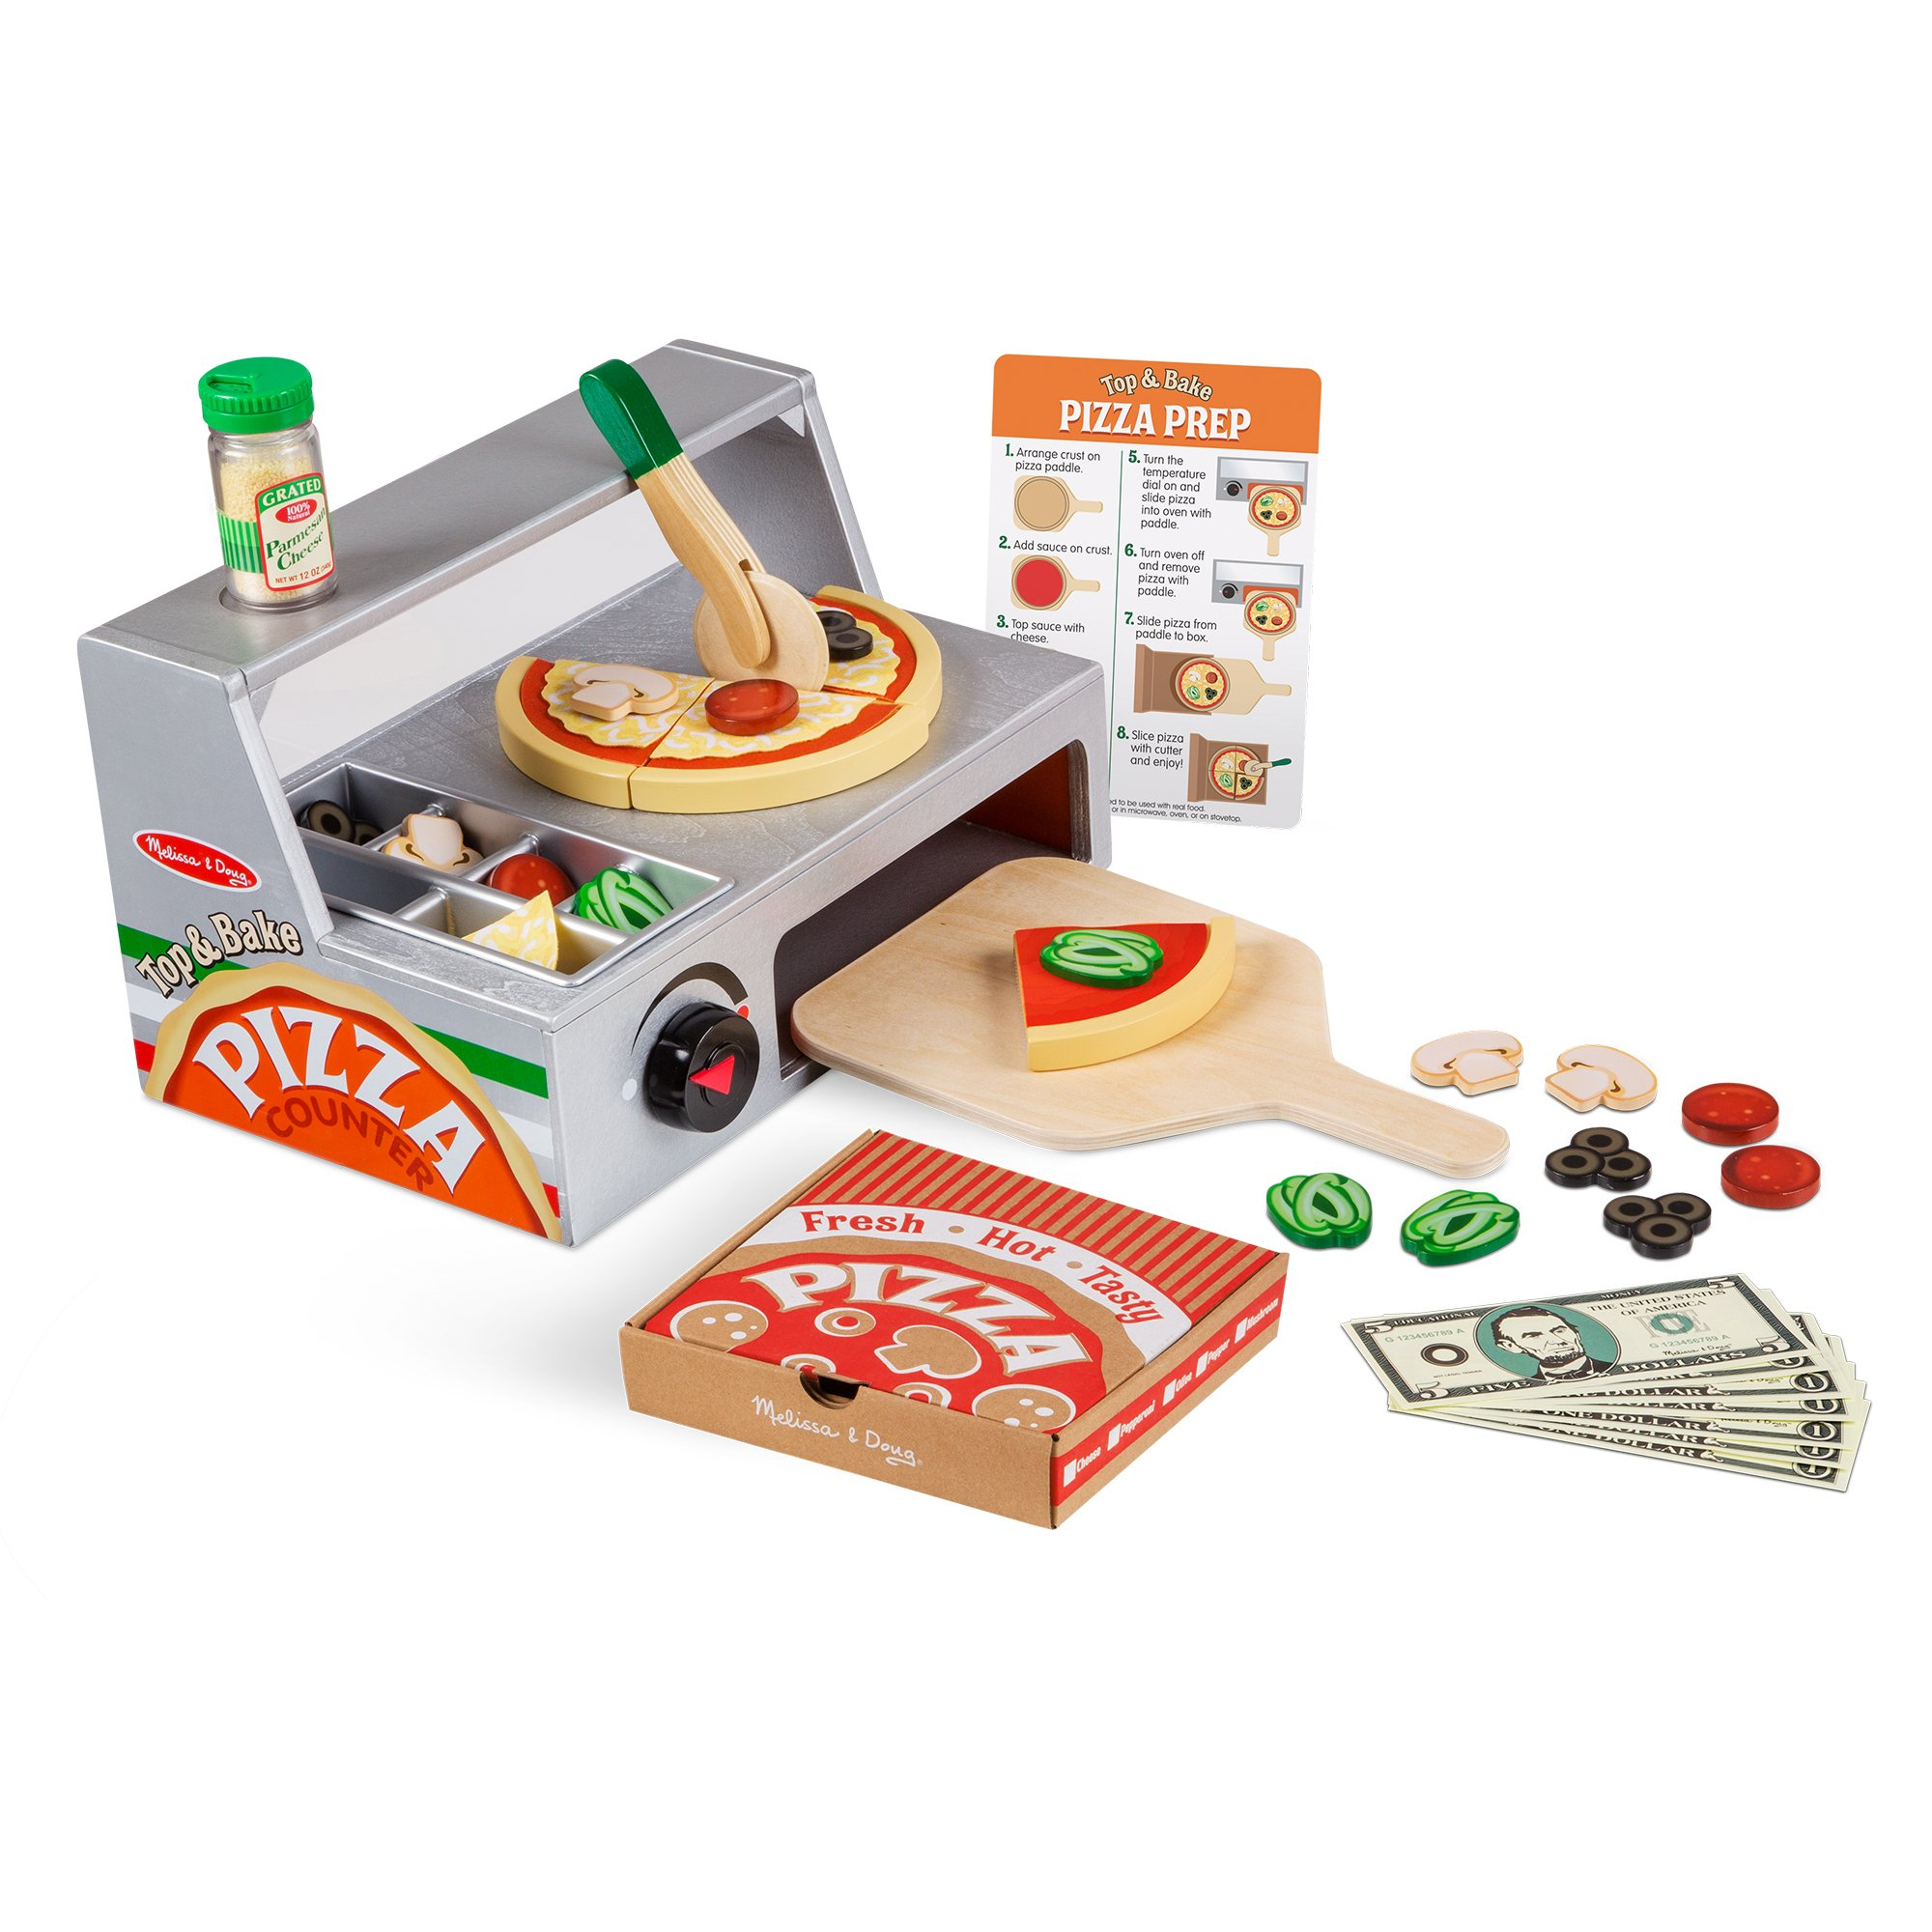 Melissa & Doug - Top & Bake Pizza Counter Play Set (19465)